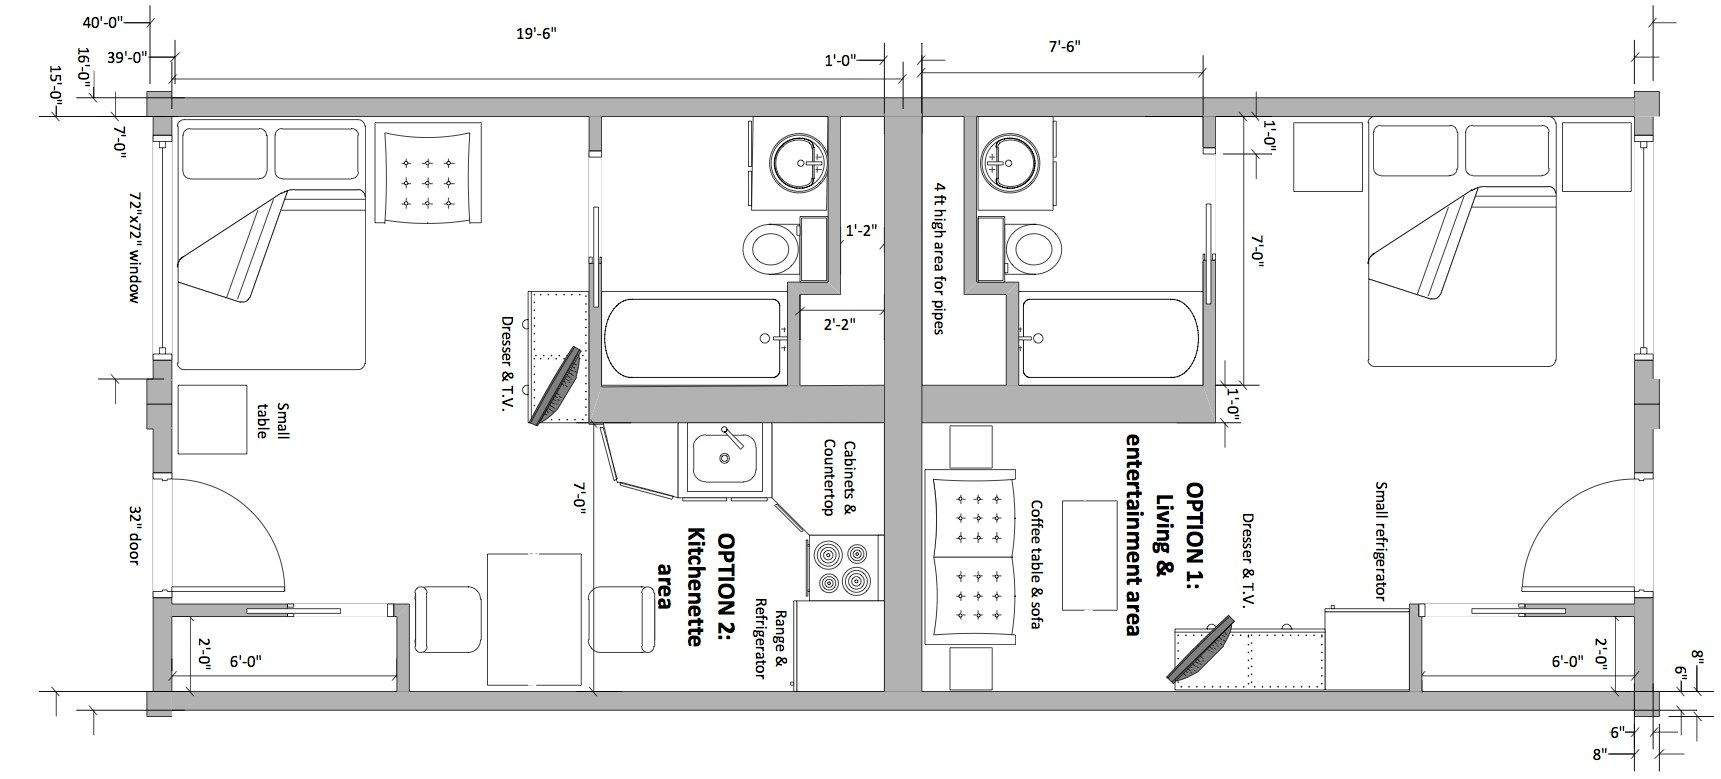 Motel room plan images galleries with for Roommate floor plan